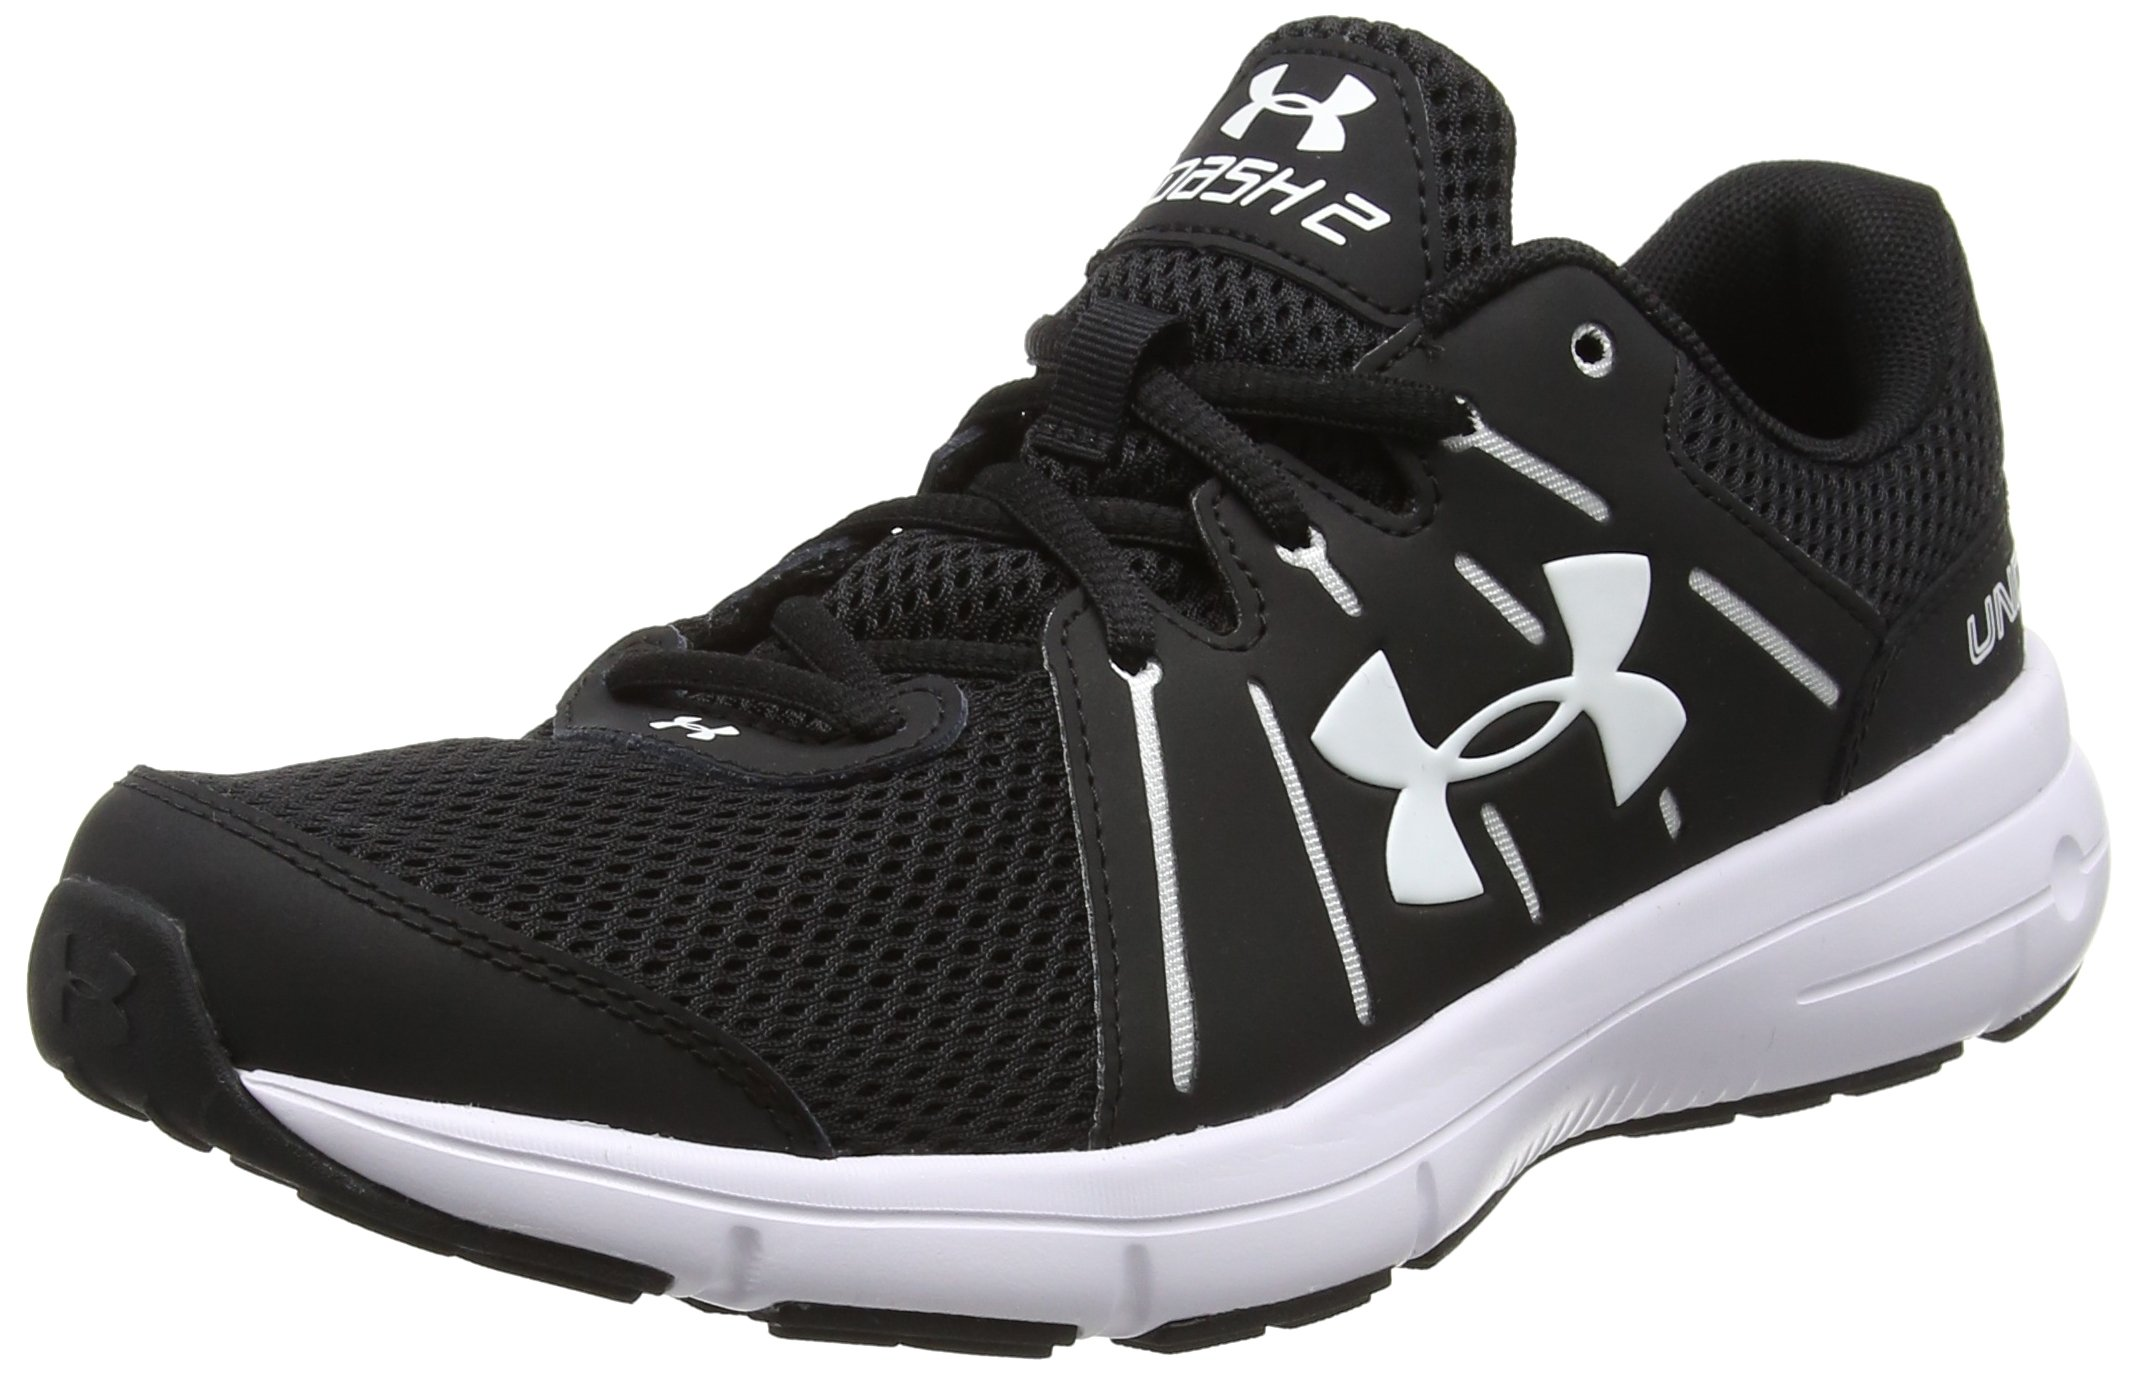 Under Armour Dash RN 2 Running Shoes - AW17-9 - Black